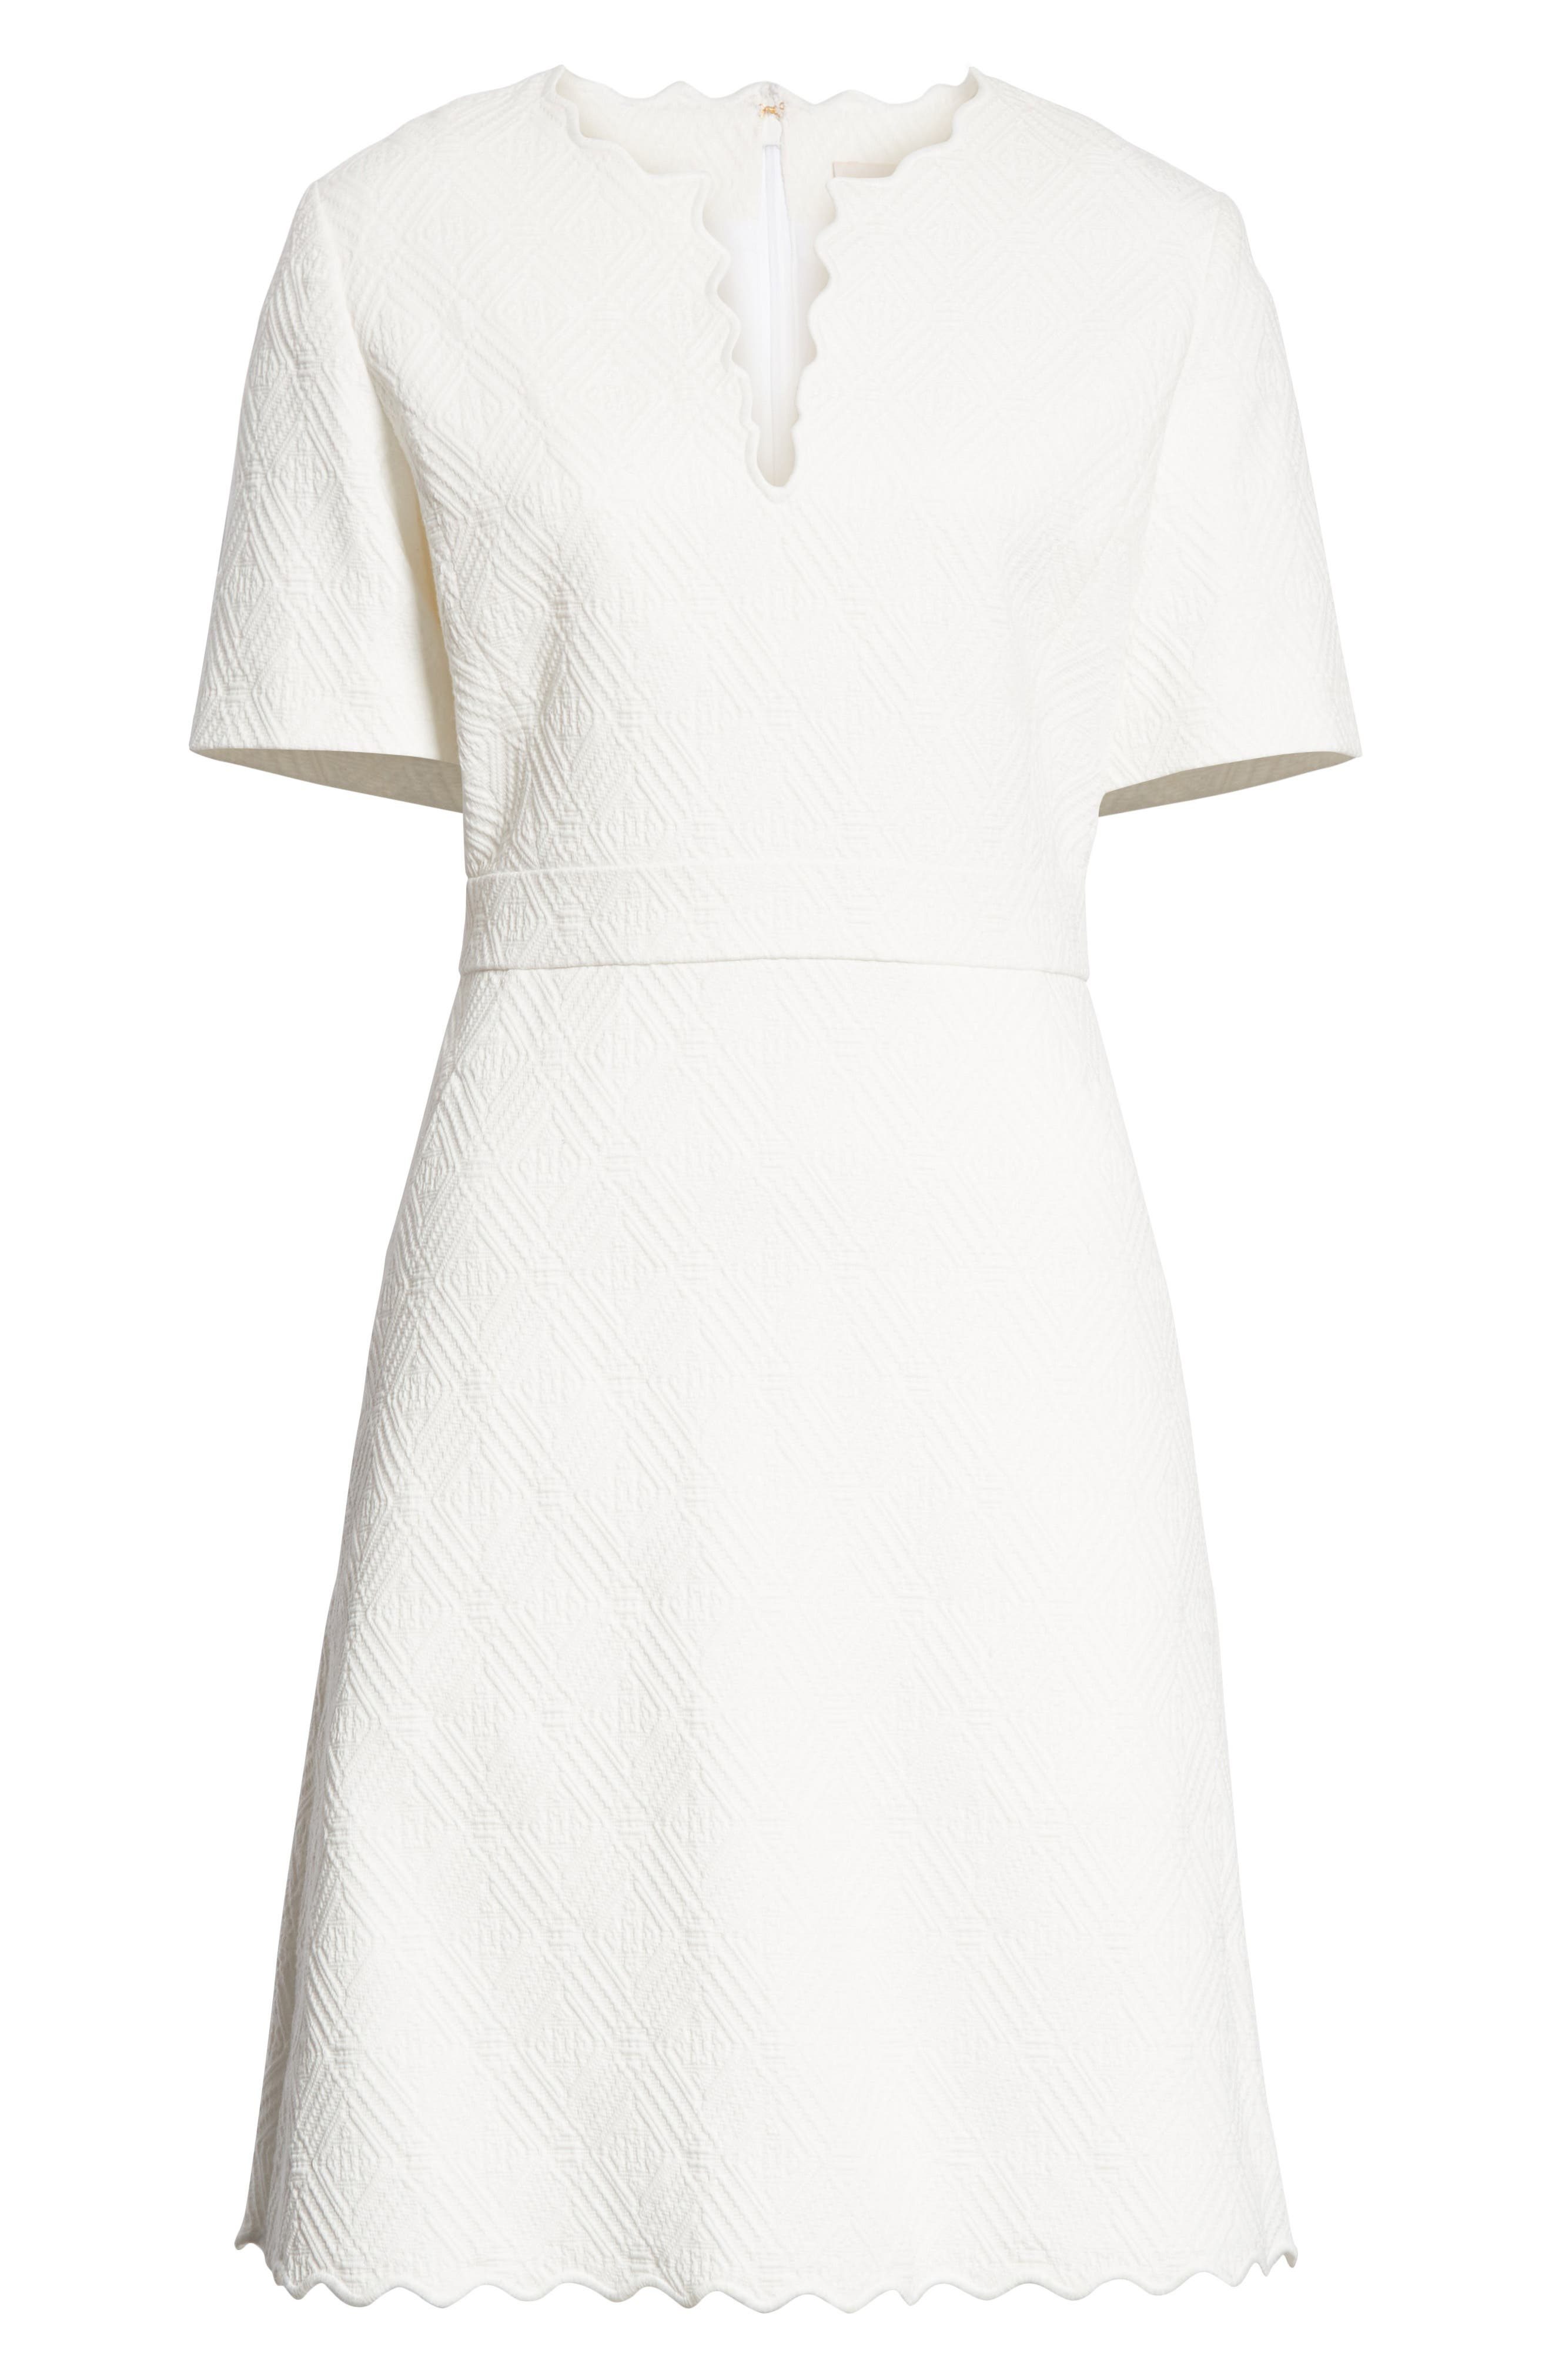 Bailey Scallop Cotton Dress,                             Alternate thumbnail 6, color,                             100